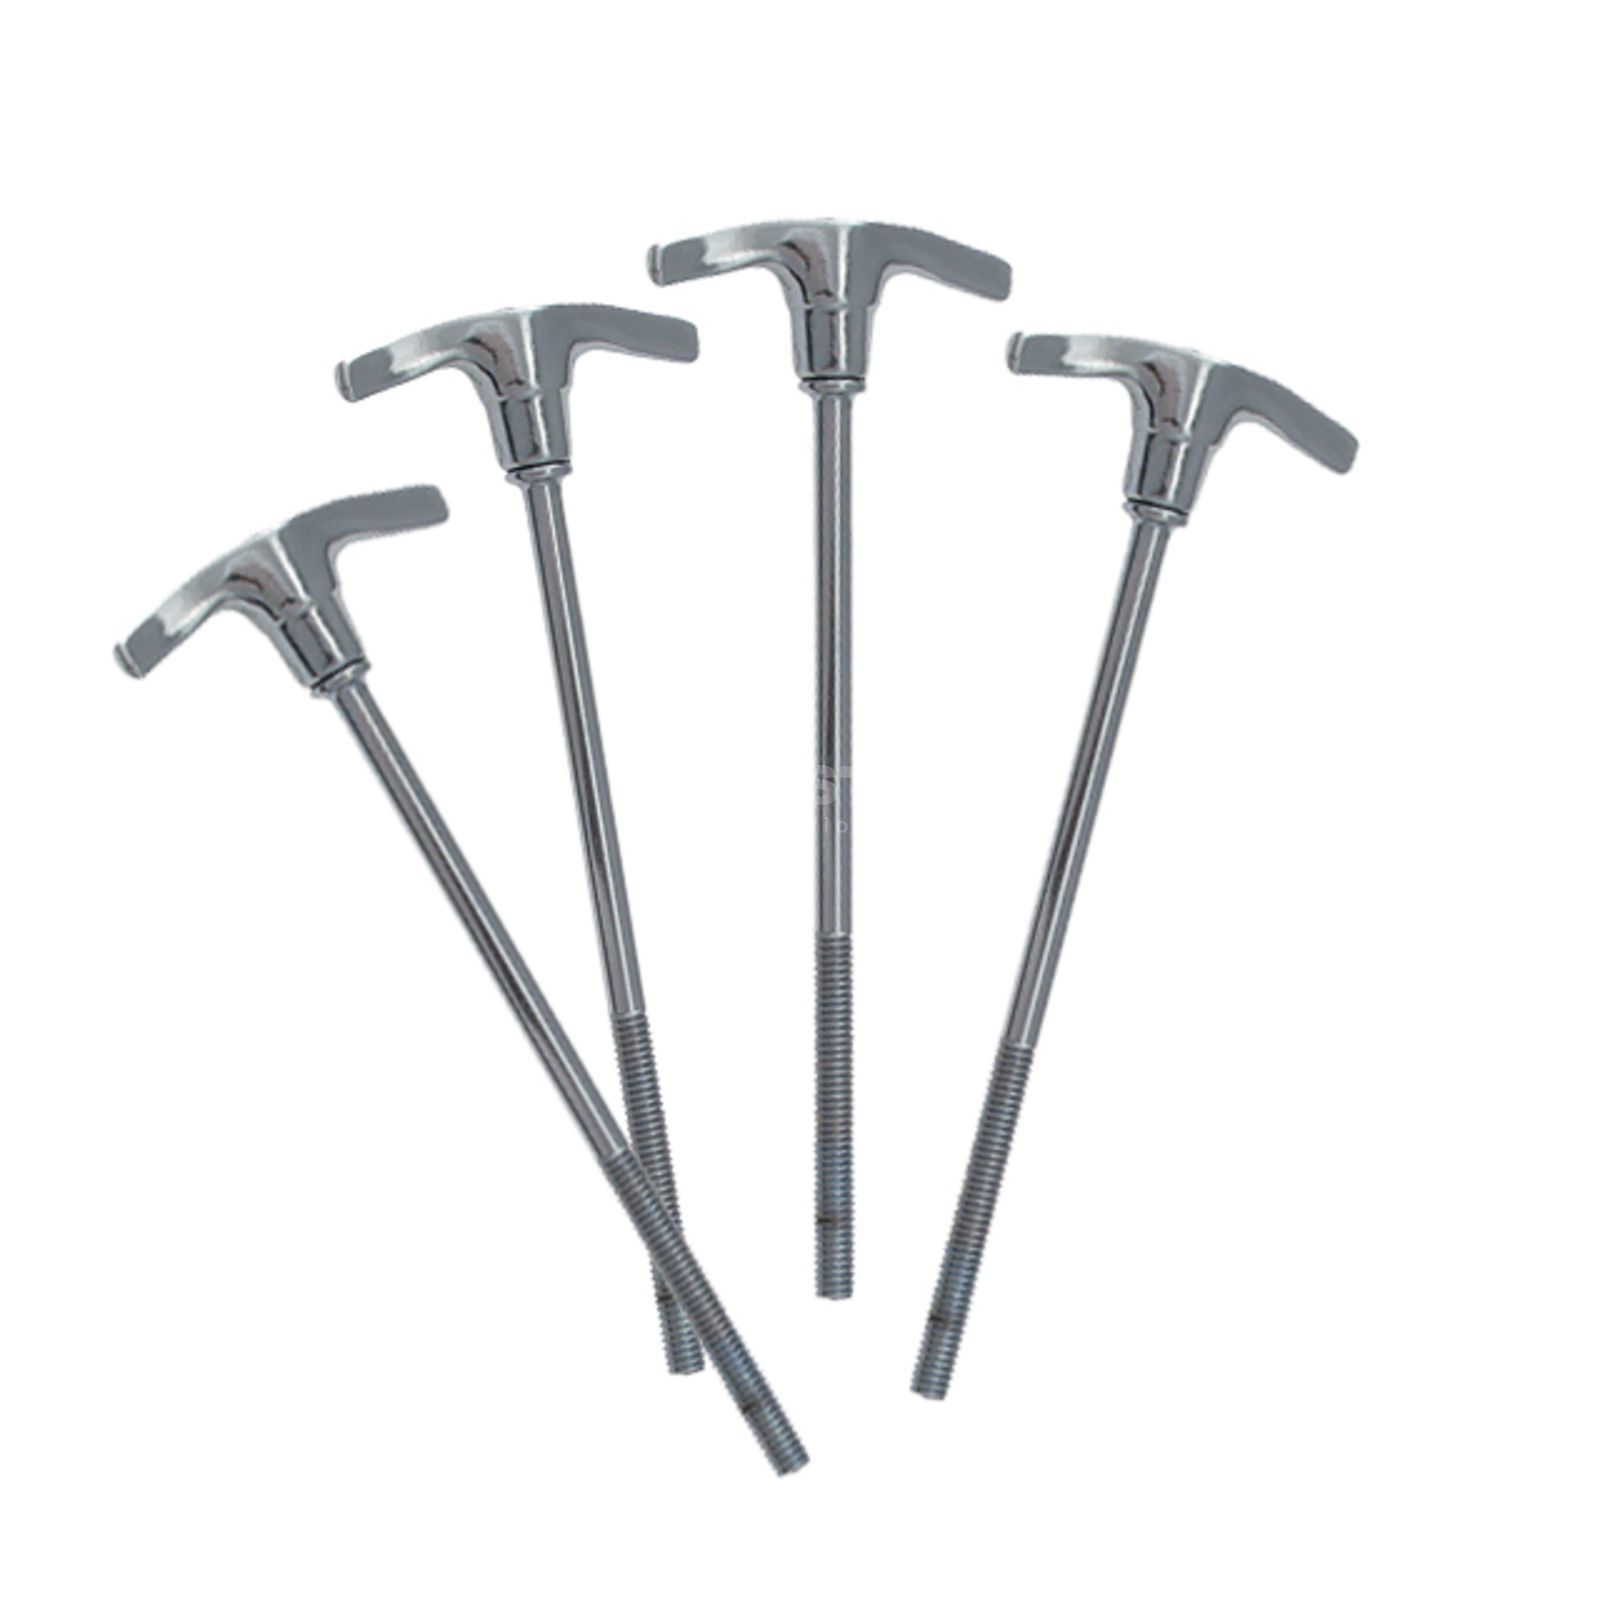 Gibraltar Wing Screws SC-BDTR/L, 4 pcs Product Image